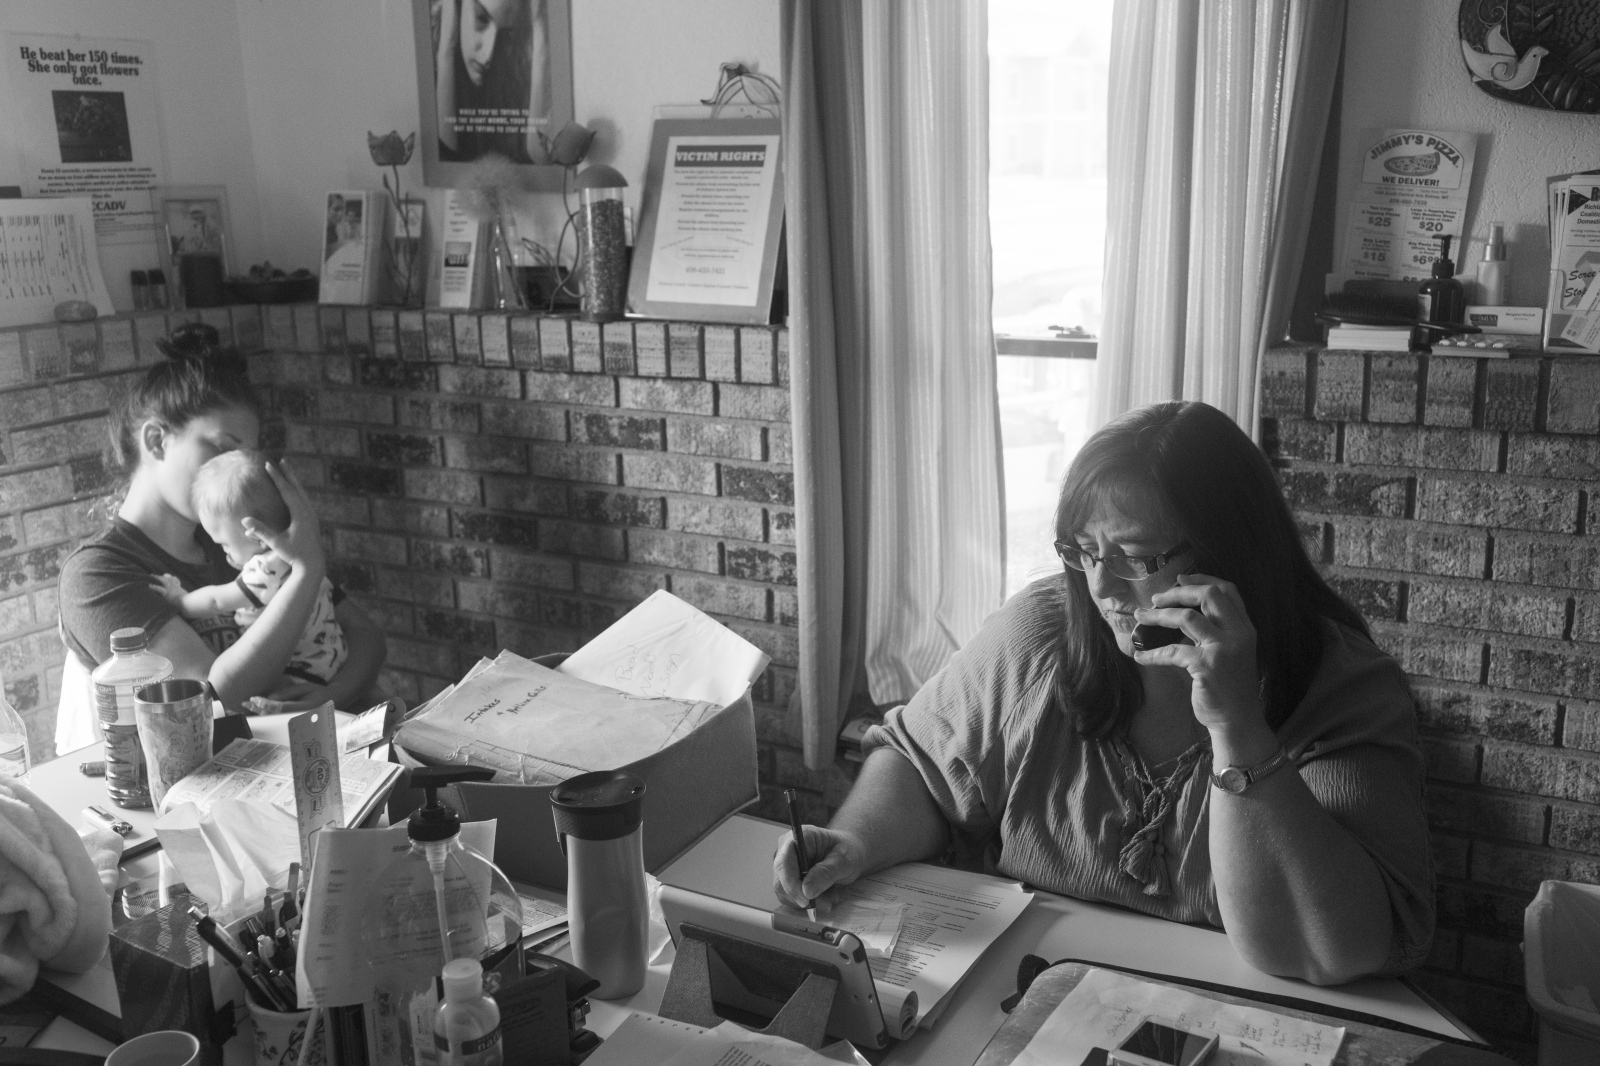 Rural areas have specific challenges regarding accessing support in cases of intimate partner violence. These challenges include high poverty, lower rates of health insurance coverage, and less access to healthcare and human services providers. Here, Helen answers calls, while another advocate takes care of a child while at work at a crisis center in rural Montana. Helen was Shirley's advocate and would consistently check in on her and drive her to most of her doctor appointments. Some appointments were over 4 hours away.